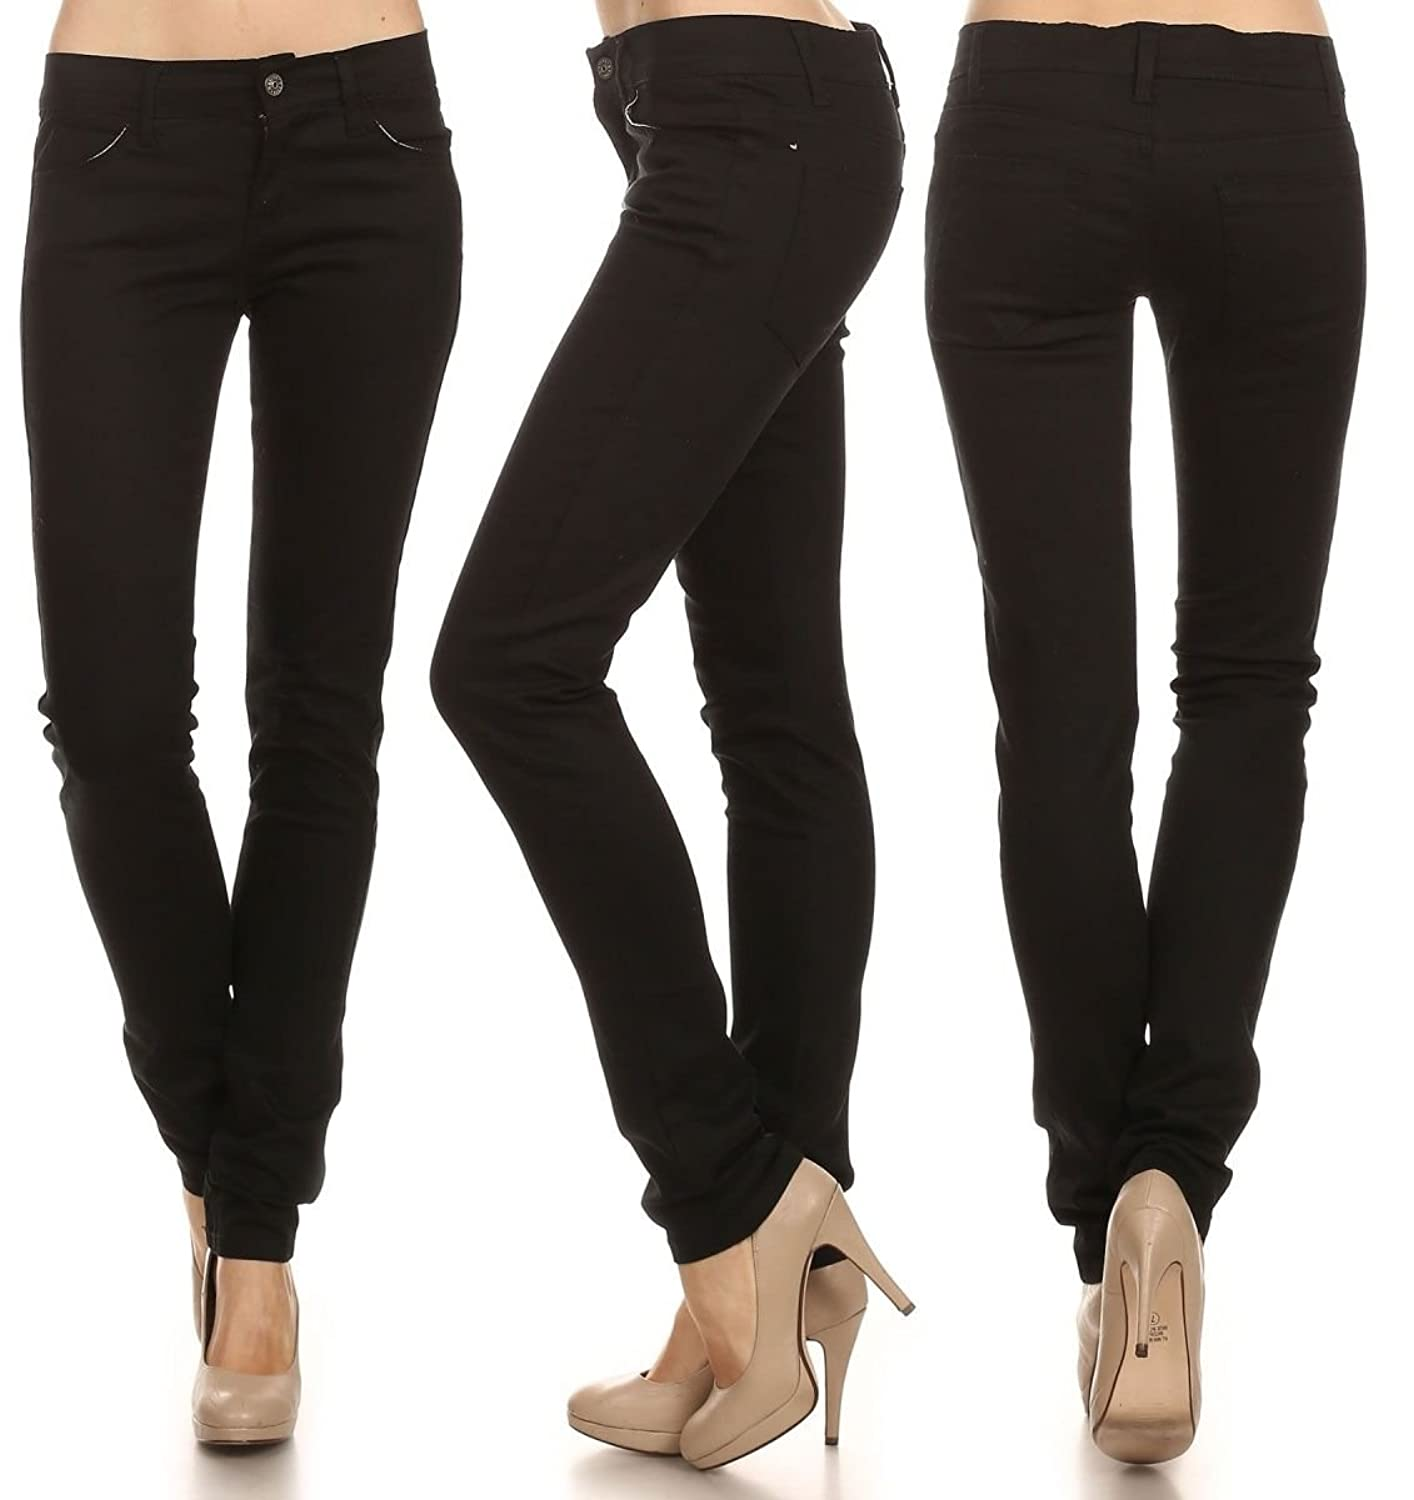 Women's Solid Mid Rise Skinny Color Jean Pockets Zip Fly Button Belt Loops Pants